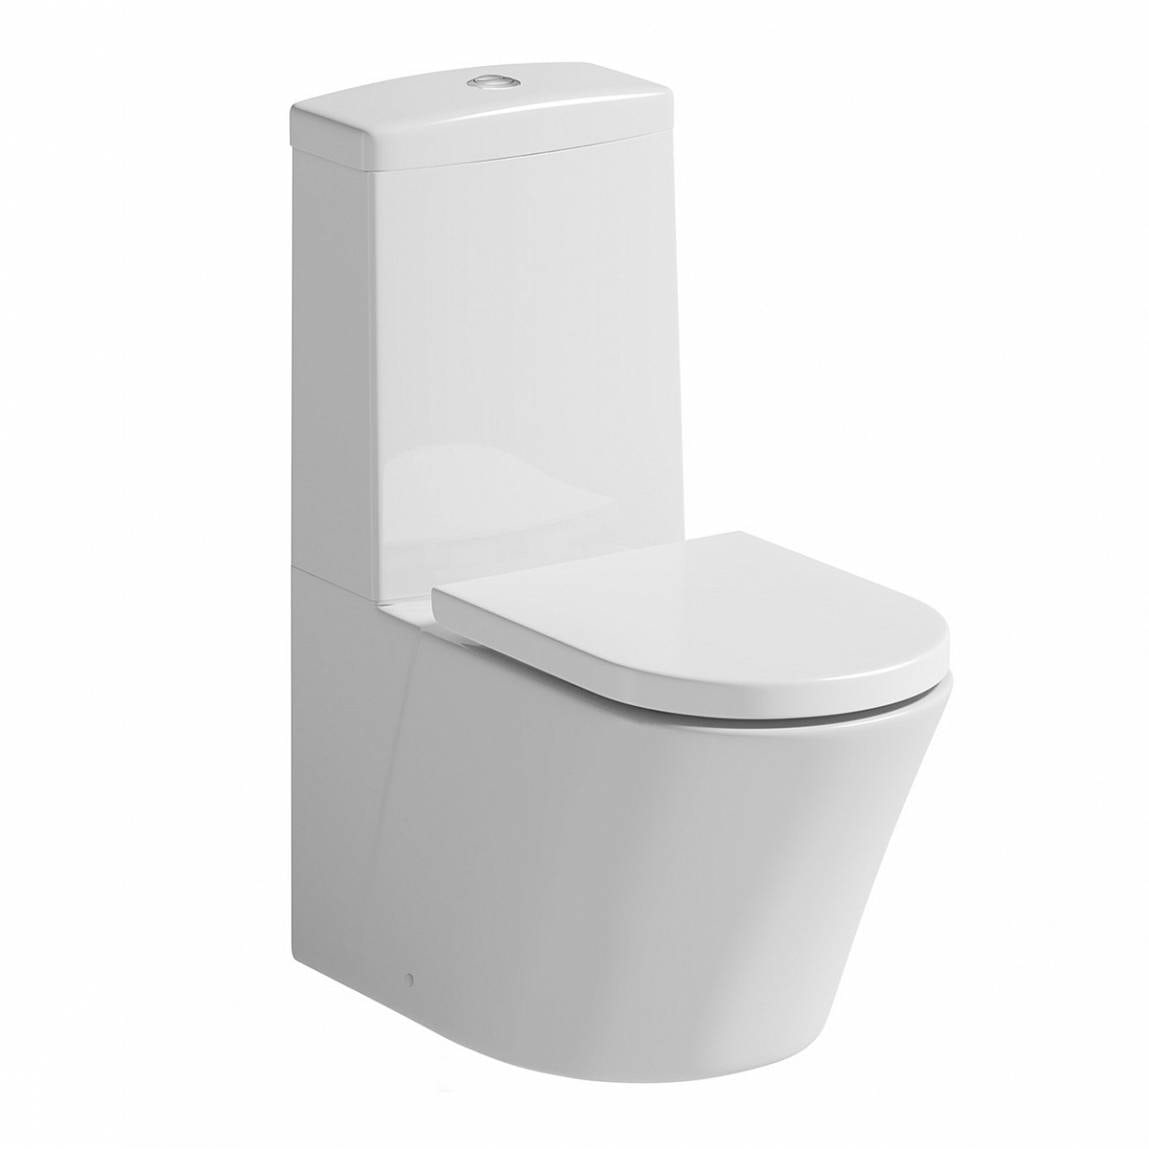 Superb Mode Tate Close Coupled Toilet With Soft Close Seat Gmtry Best Dining Table And Chair Ideas Images Gmtryco